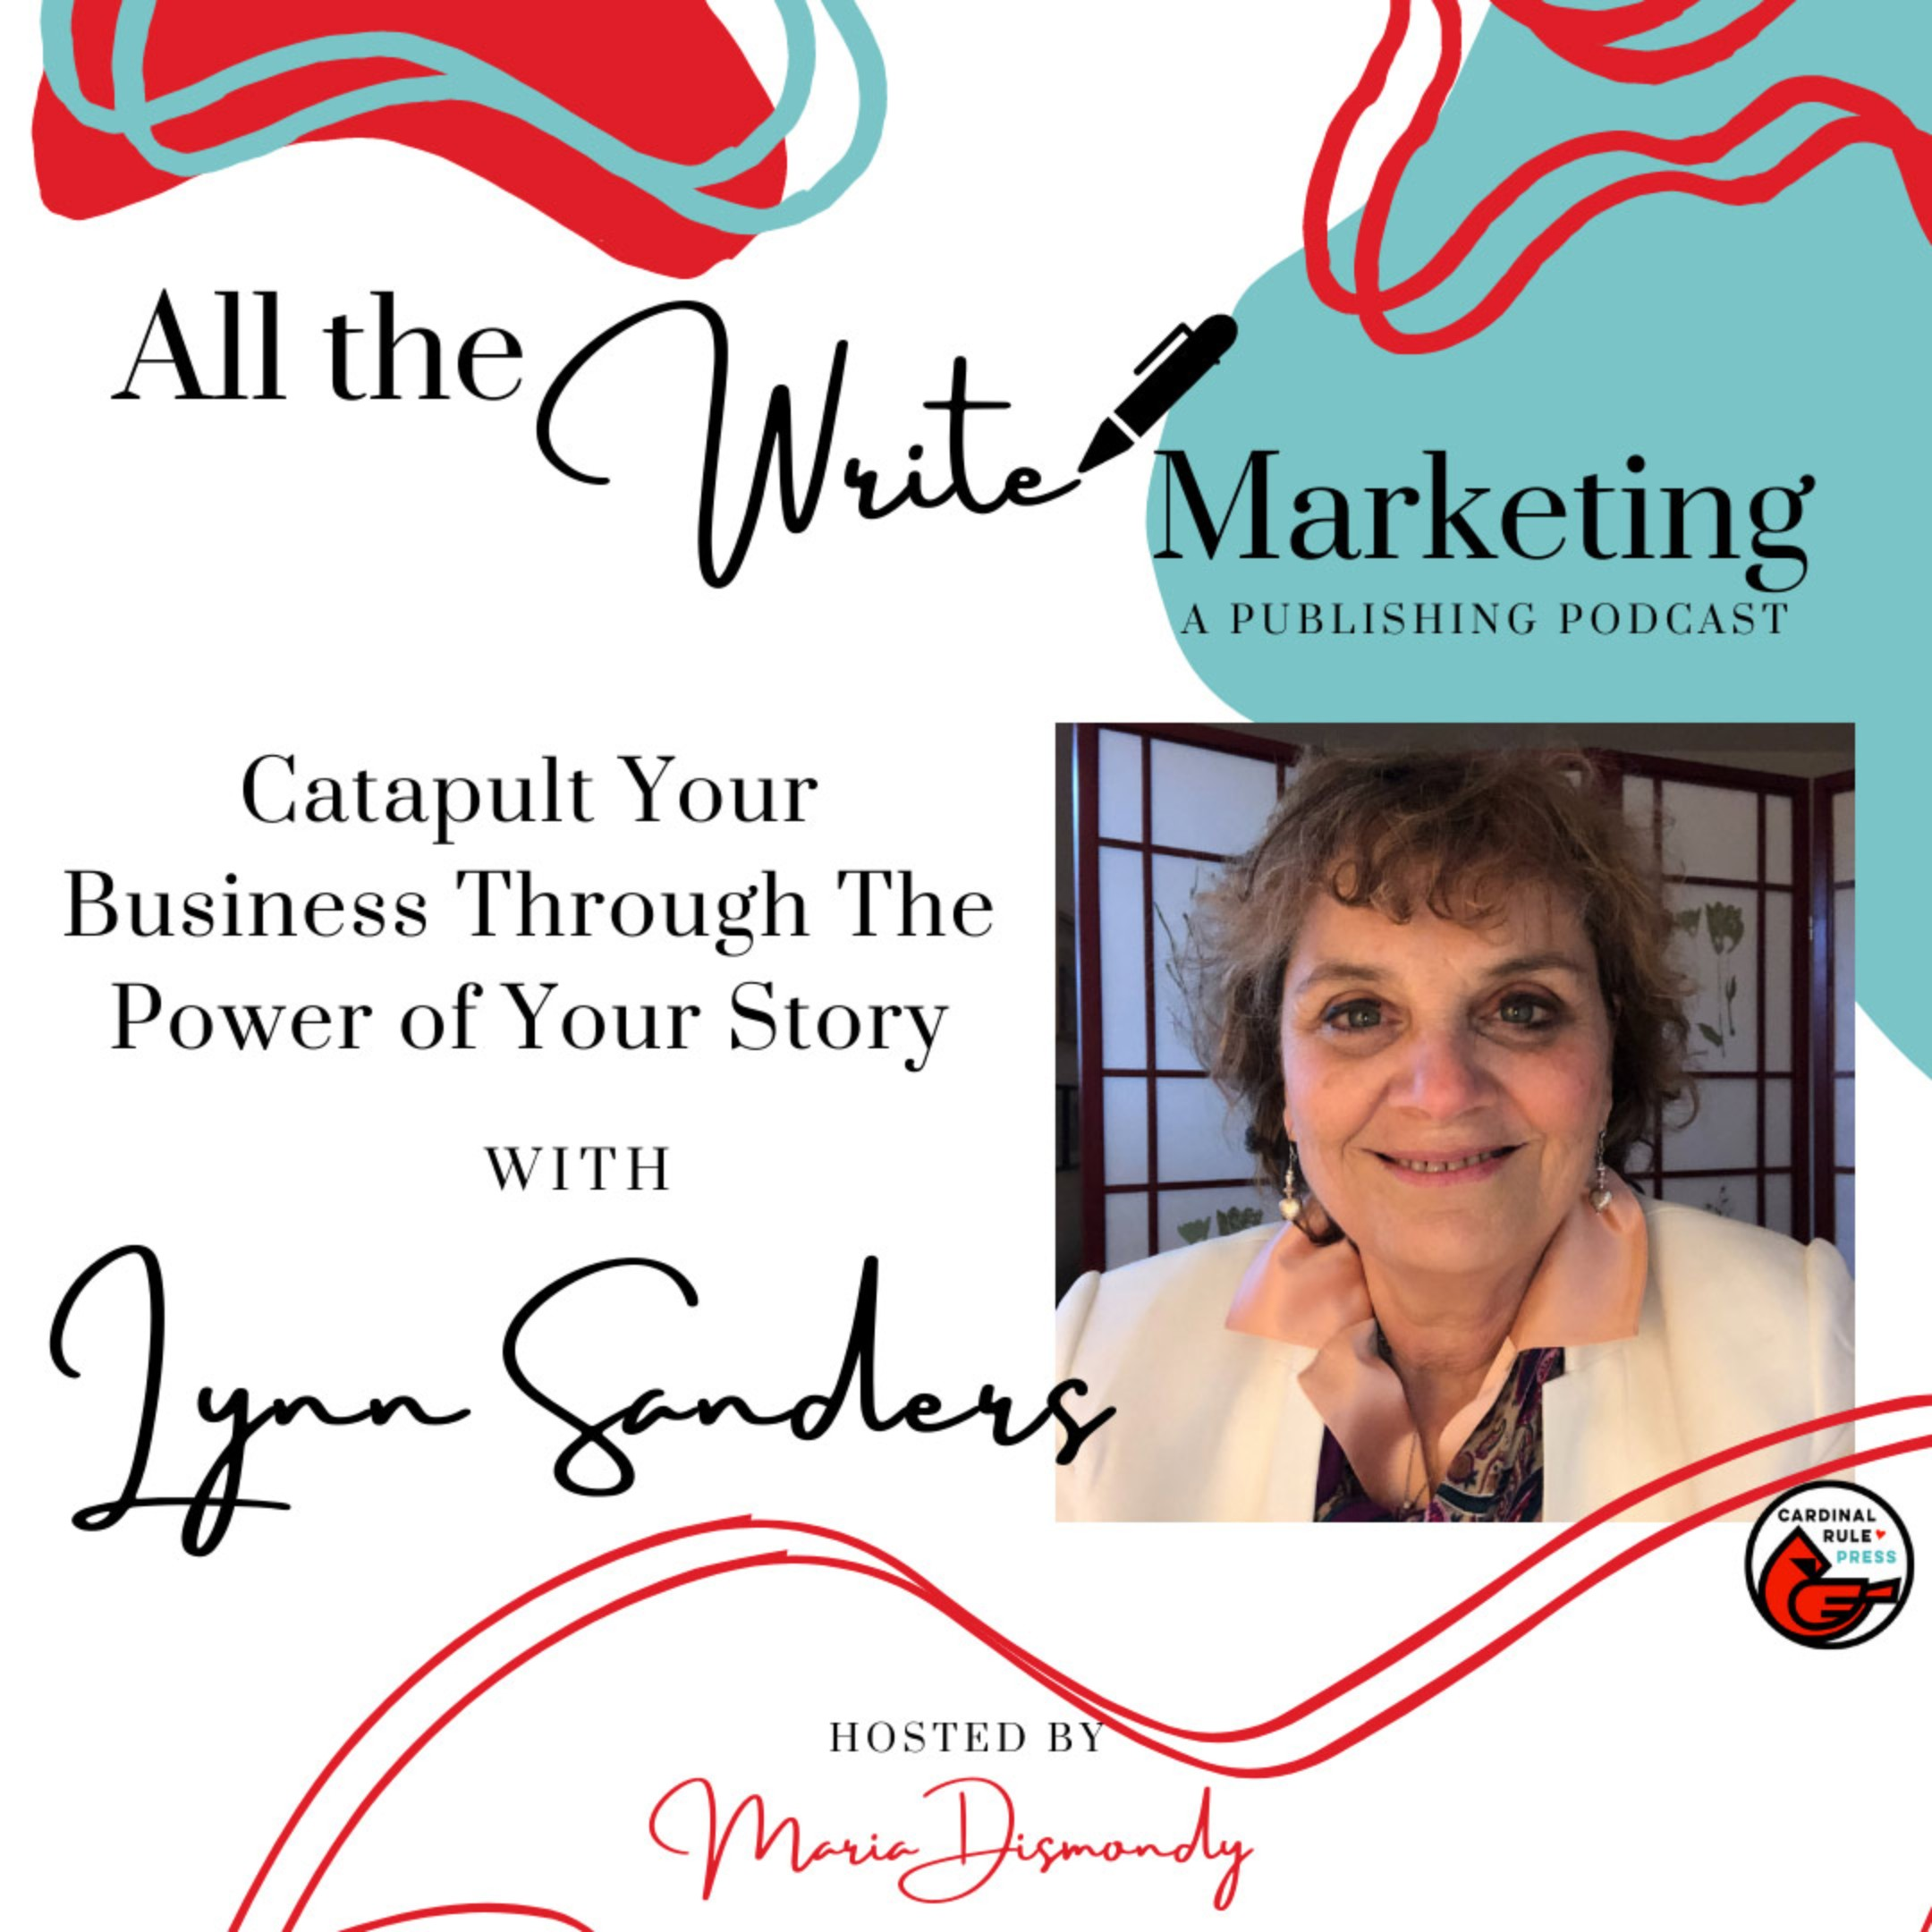 Catapult Your Business Through The Power of Your Story with Lynn Sanders